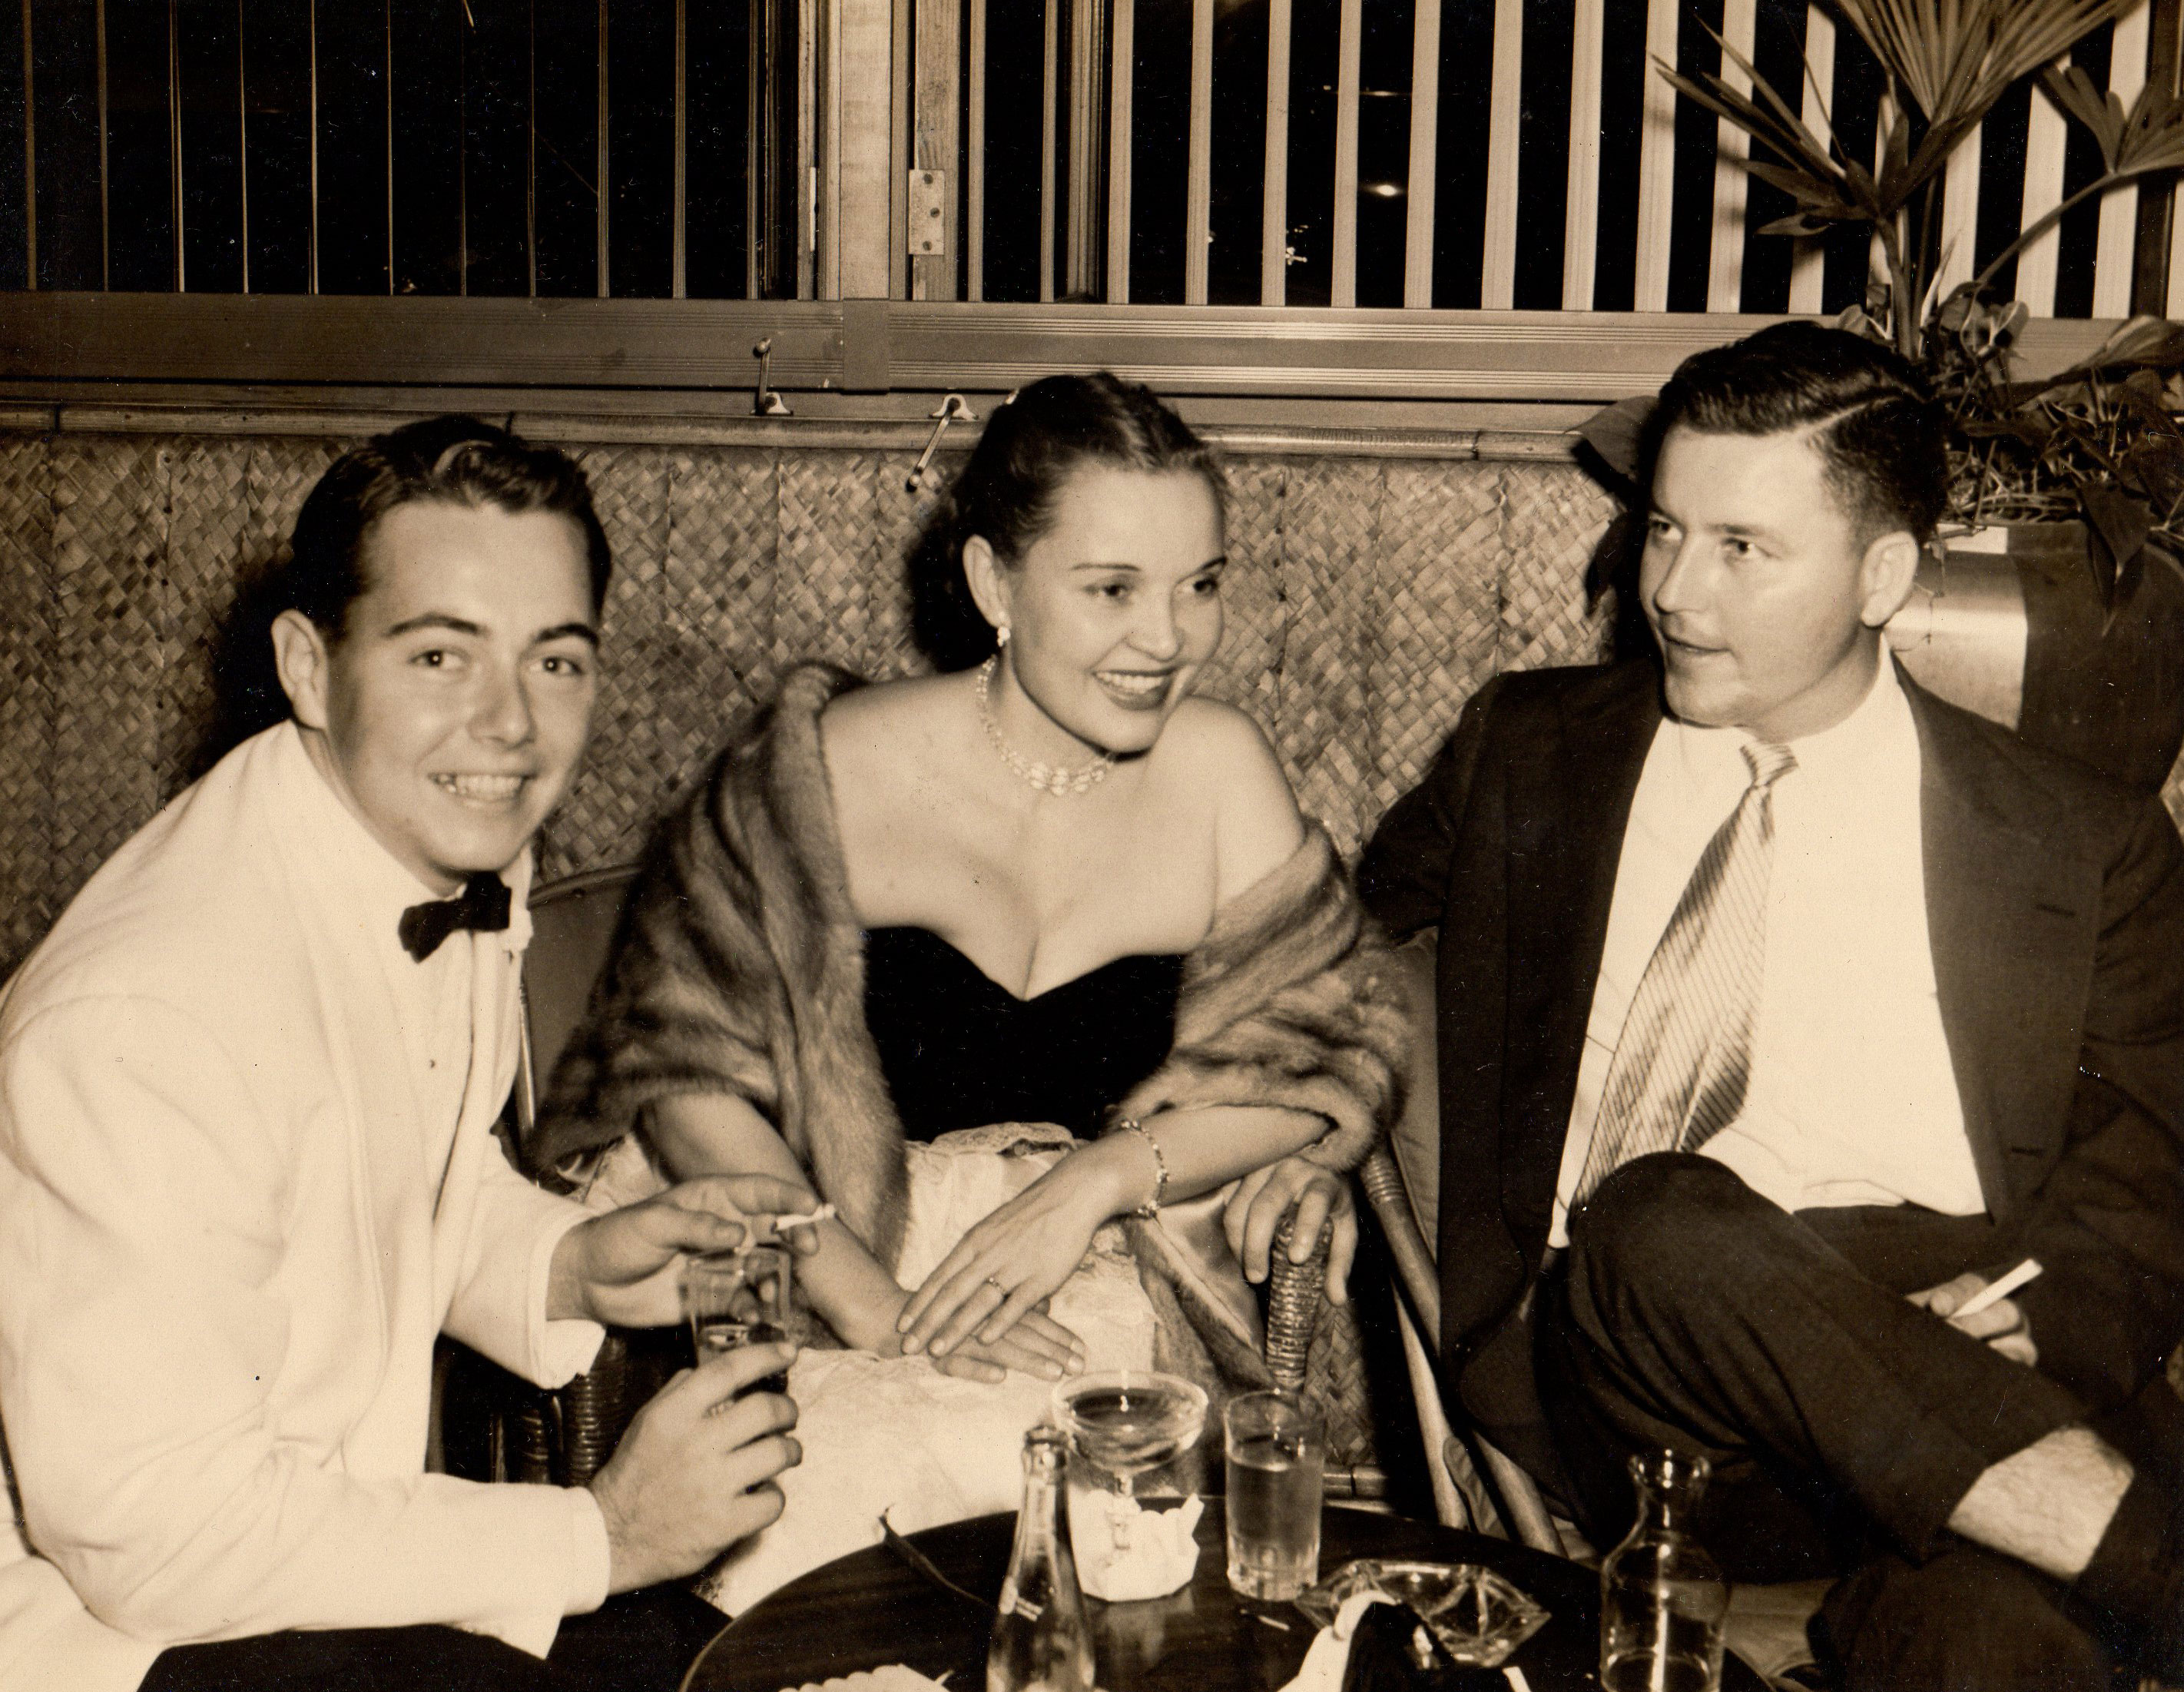 Picture from the 1950s of glamorous young professionals at a bar.